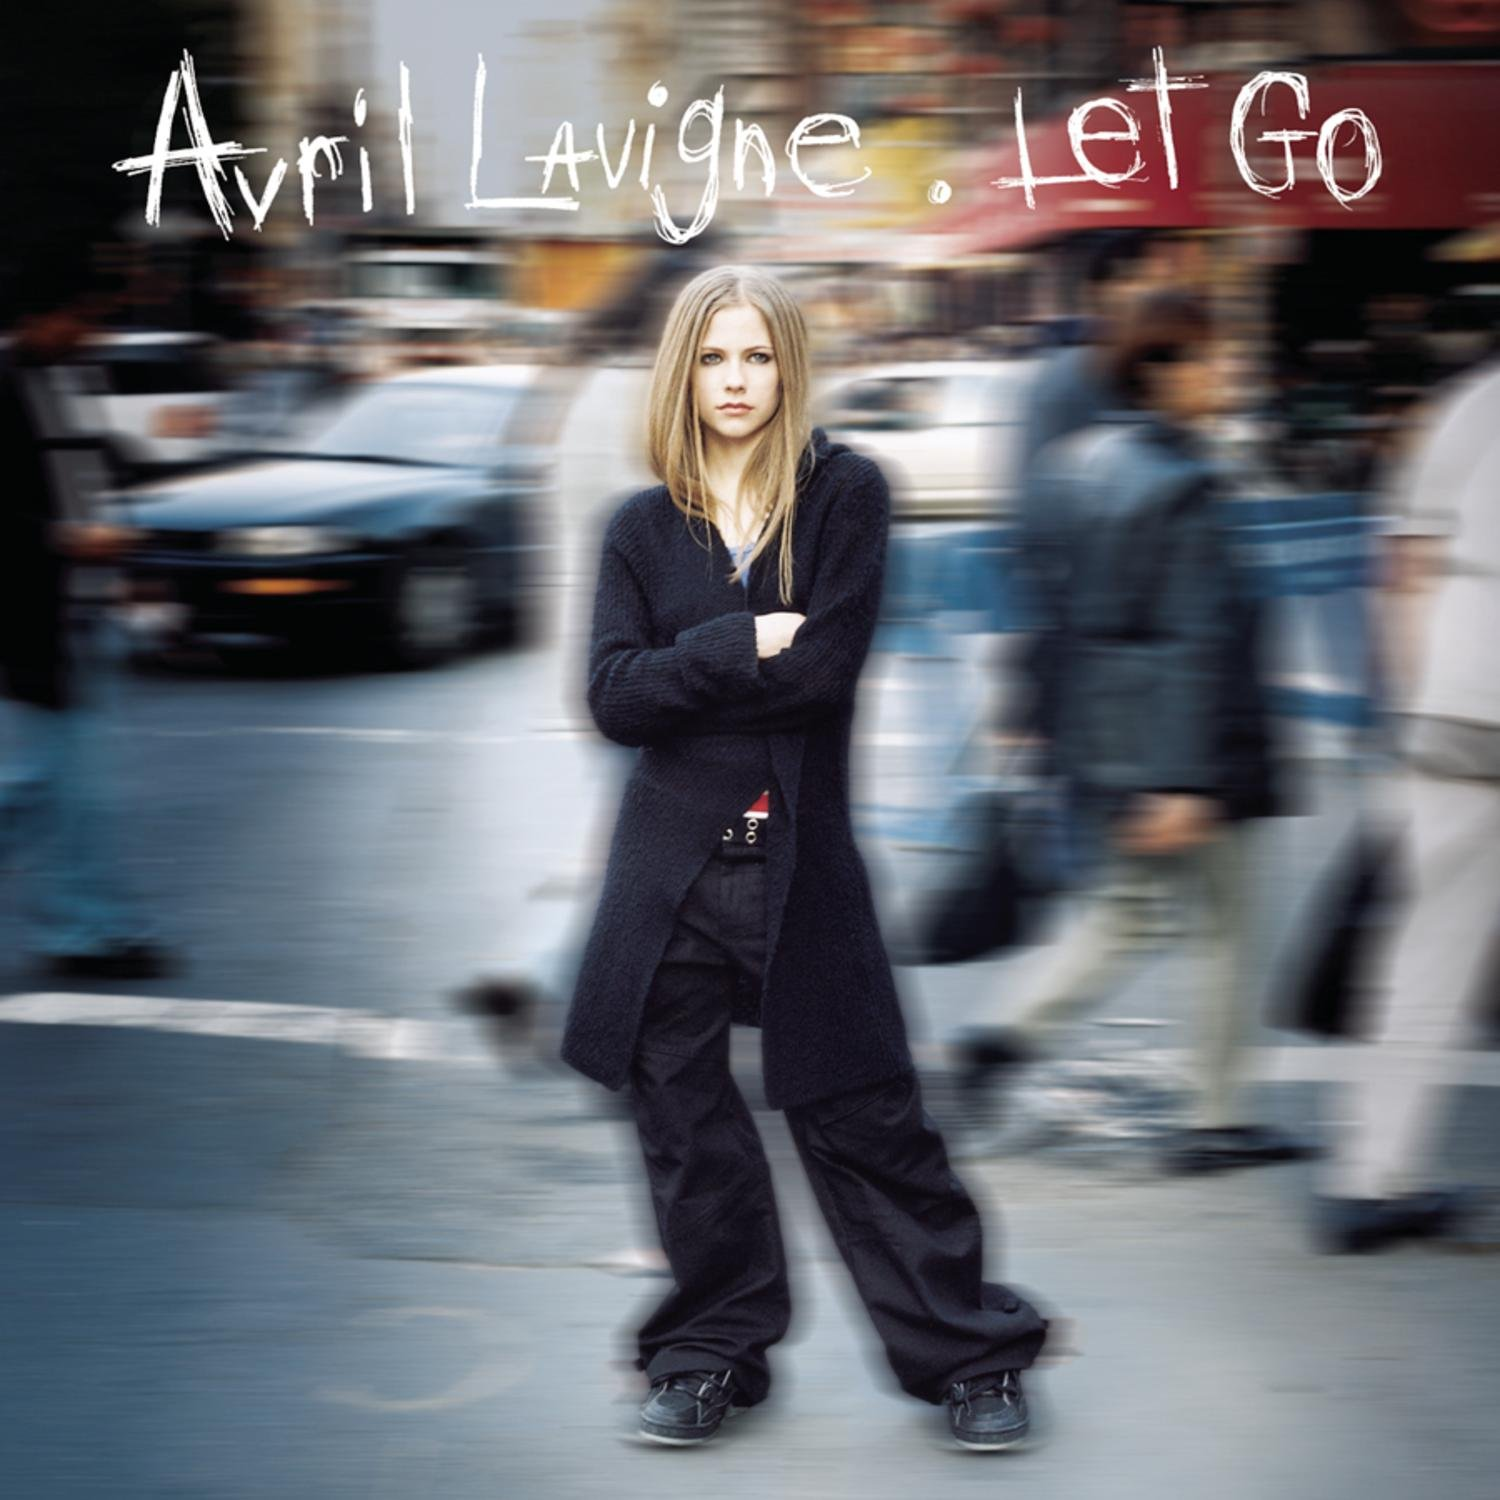 Avril Lavigne, Let Go